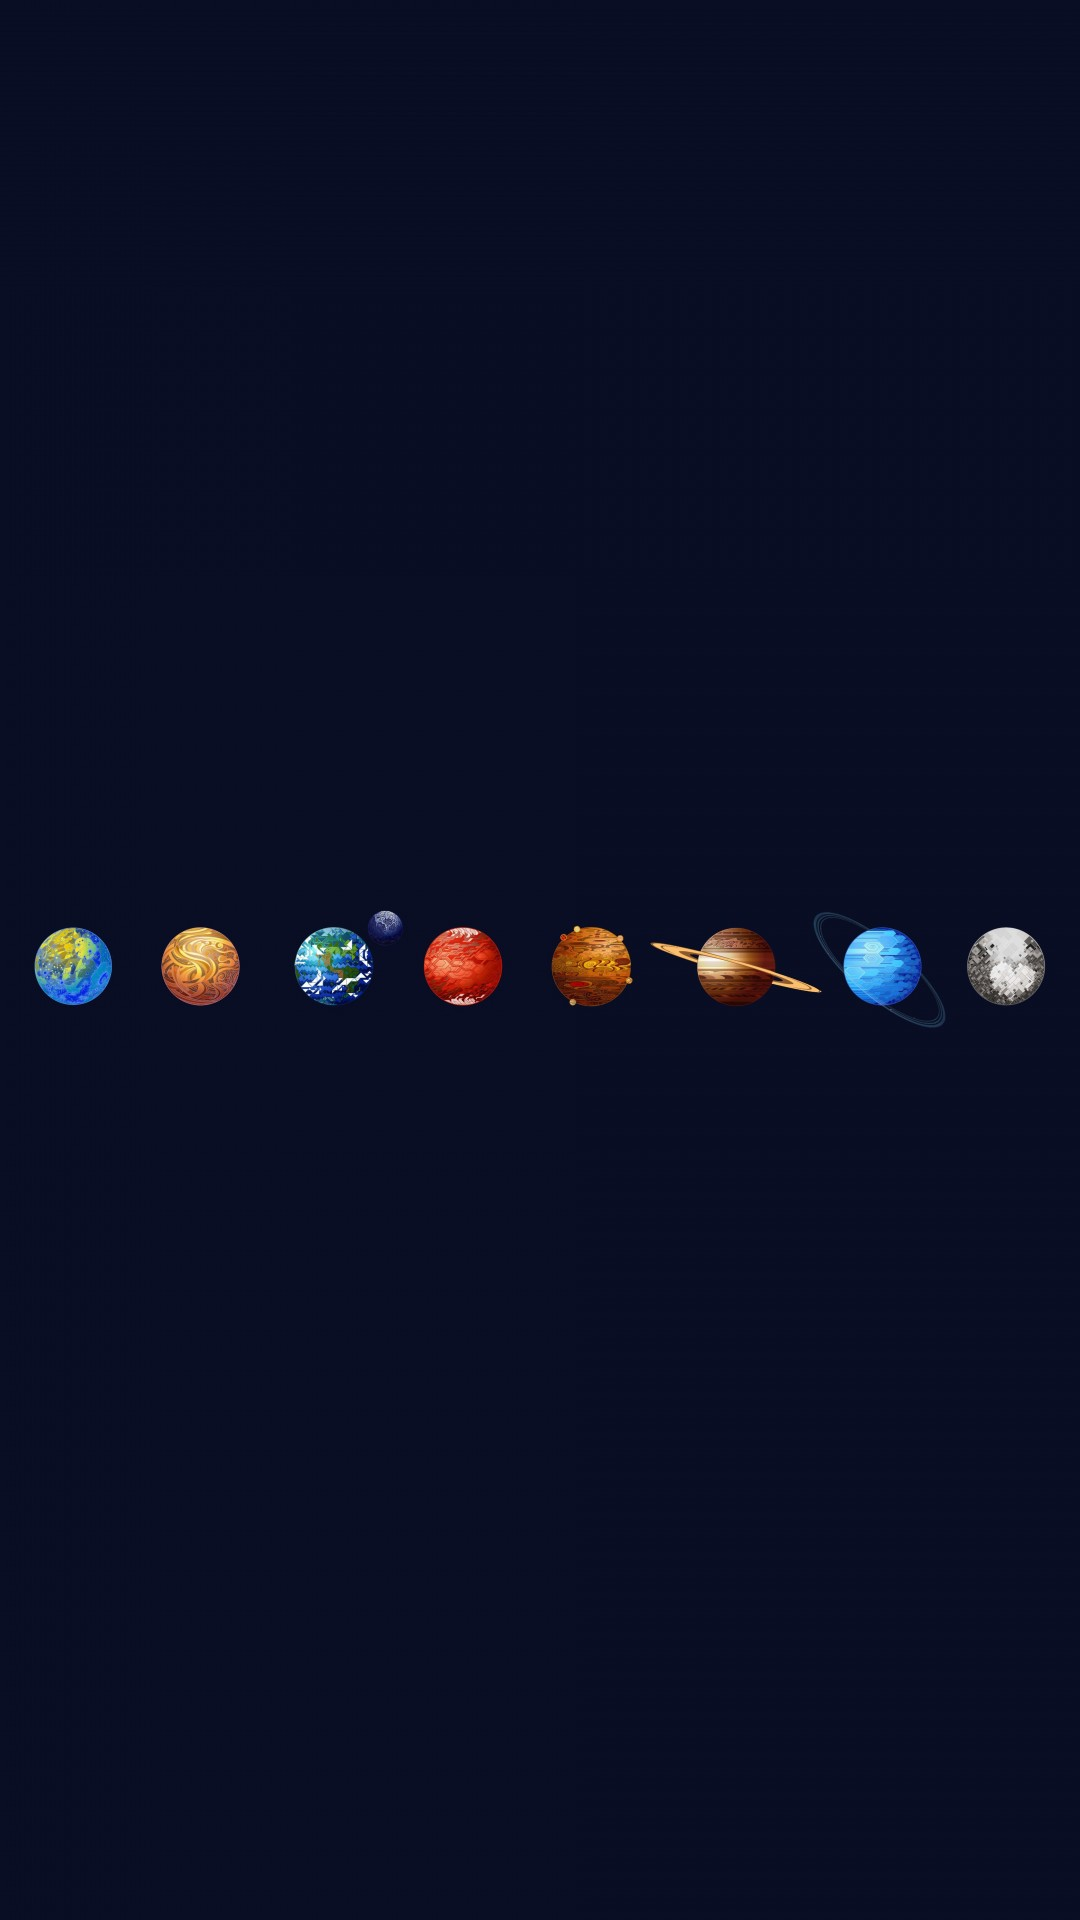 Solar System Wallpaper for SAMSUNG Galaxy Note 3